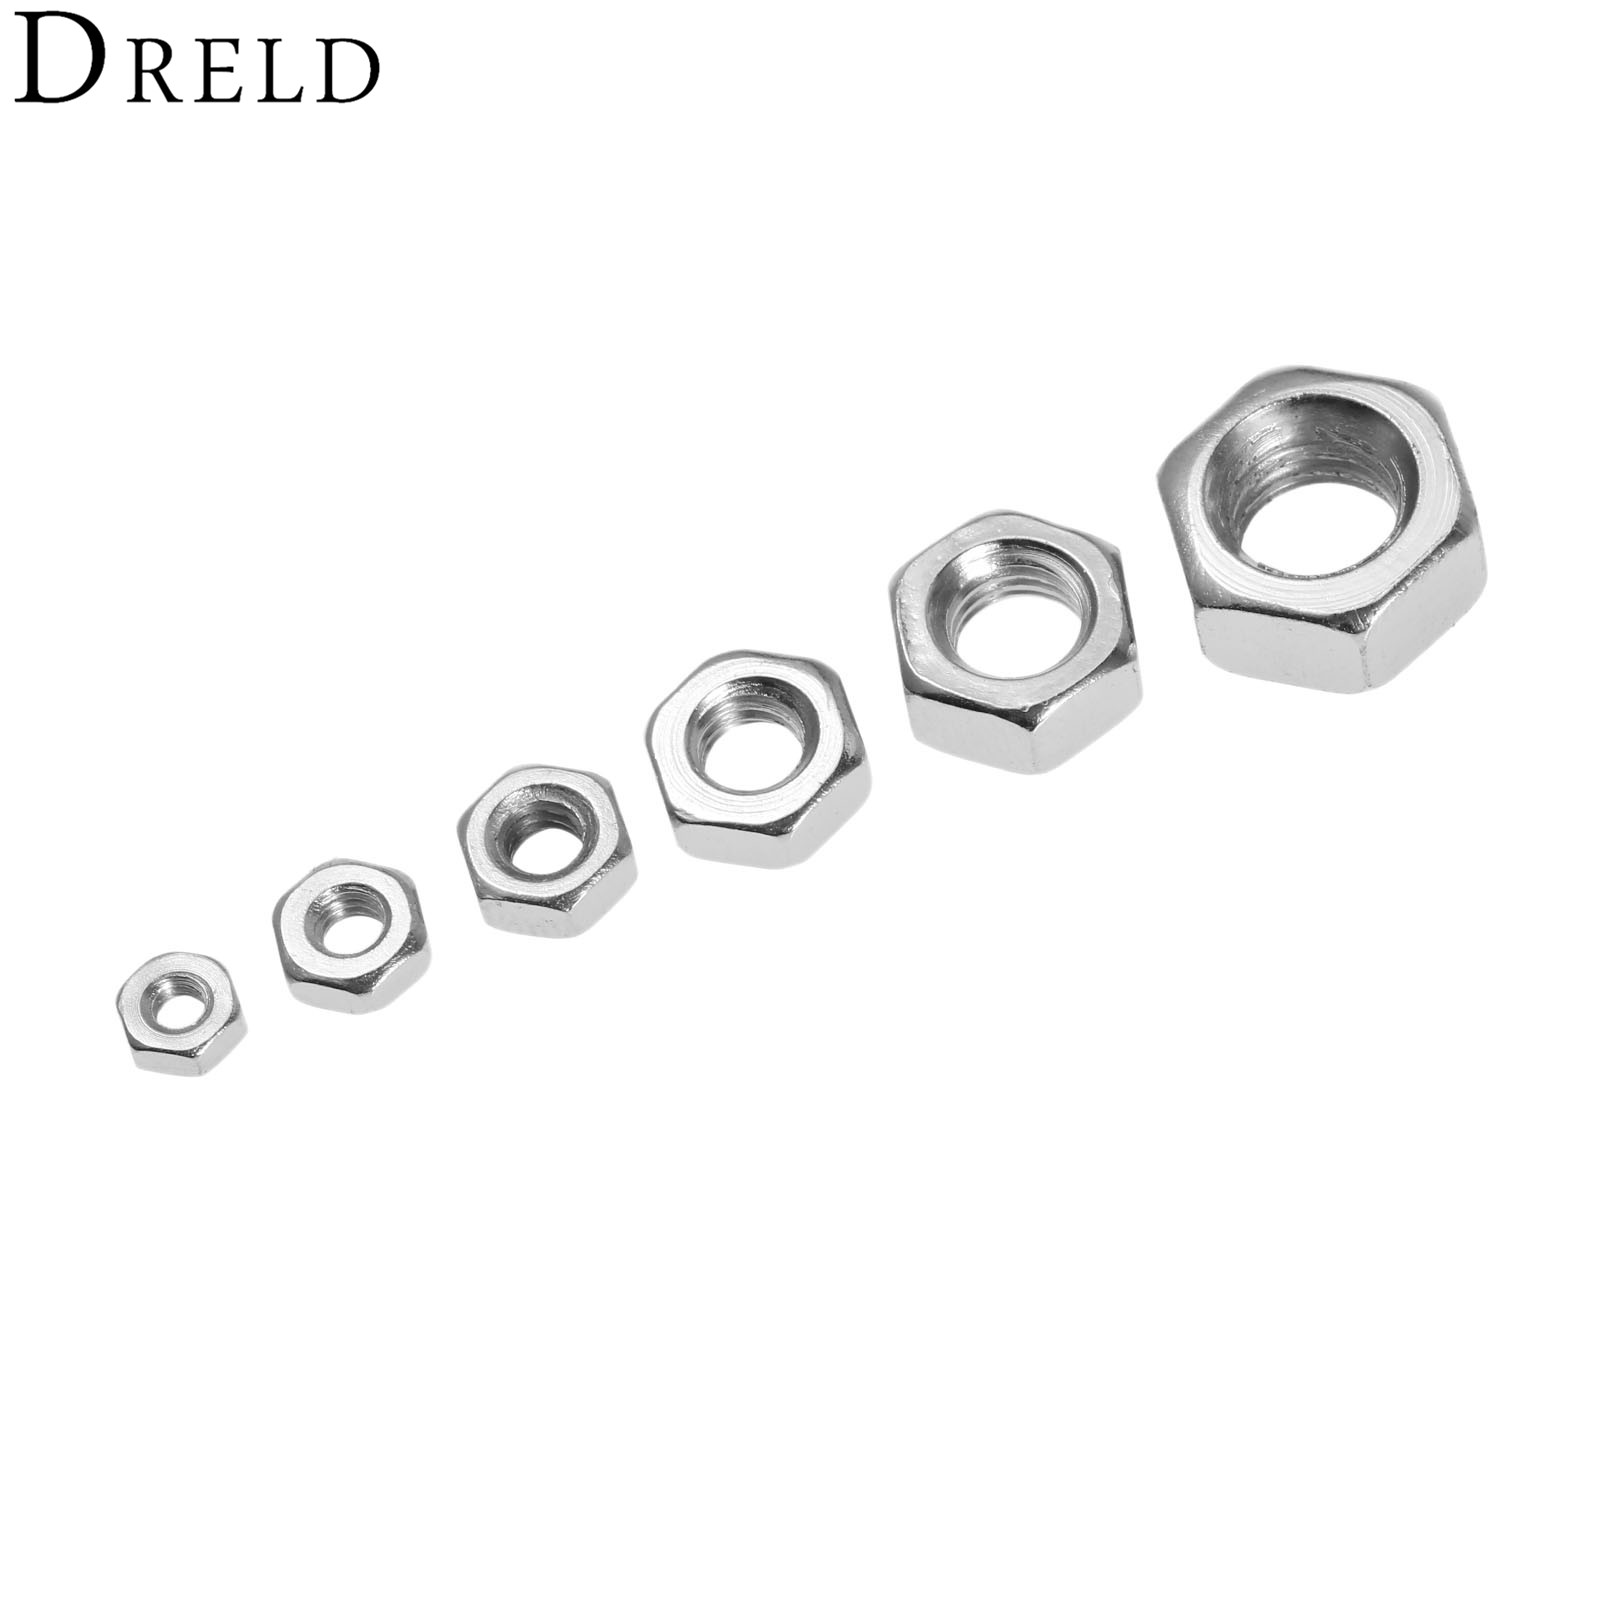 DRELD 50Pcs/lot M2/M2.5/M3/M4/M5/M6 Nuts Carbon Steel Metric Thread Hex Nuts Silver Hexagon Nut For Screws Bolts Fasteners 4pcs set hand tap hex shank hss screw spiral point thread metric plug drill bits m3 m4 m5 m6 hand tools